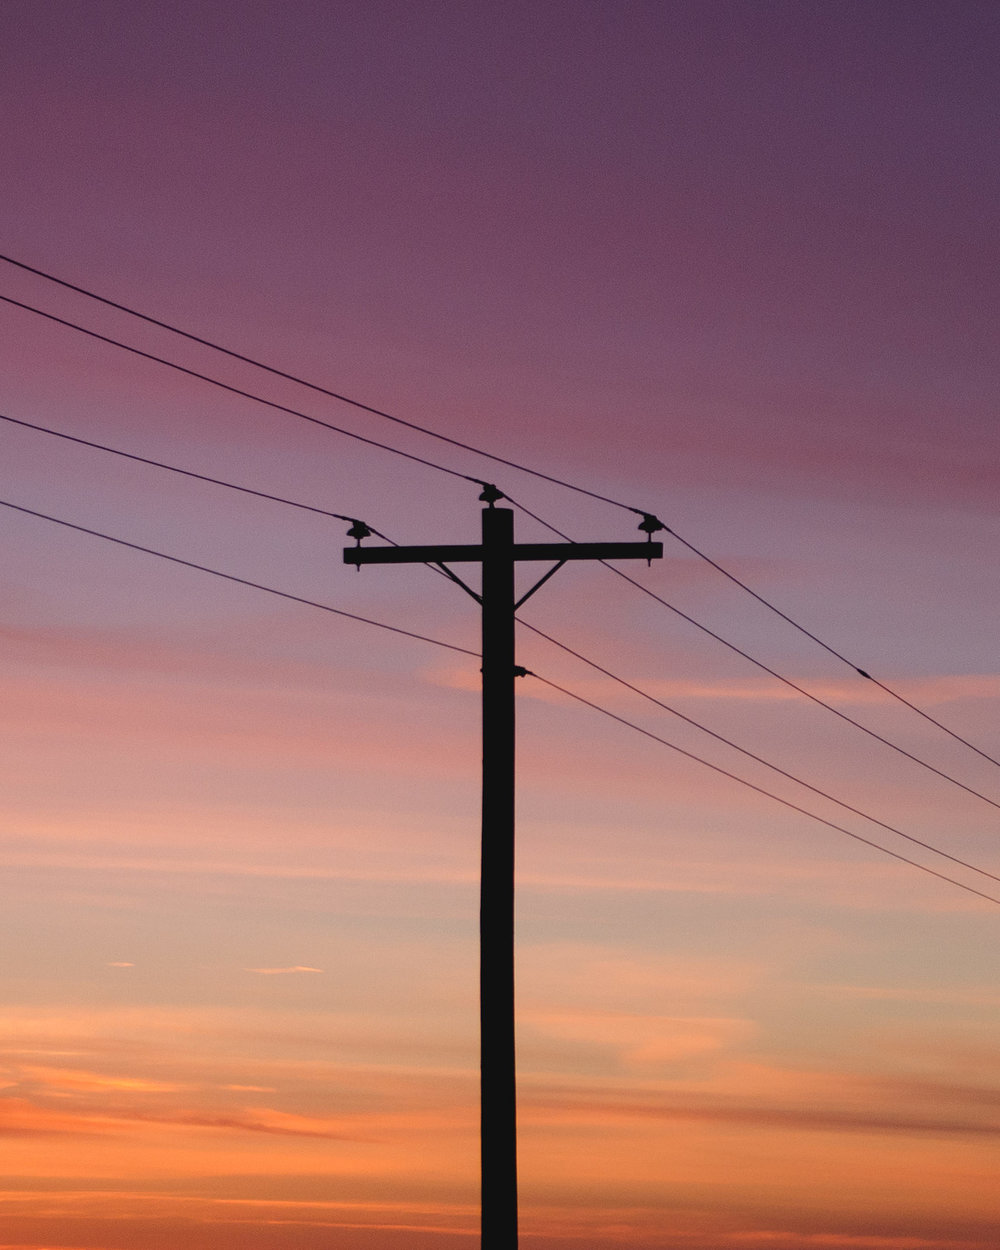 polar-visual-taylor-sheppard-photography-photo-video-motion-design-graphic-stonewall-winnipeg-manitoba-sunset-powerline-hydro-sky-clouds-minimal-silhouette.jpg